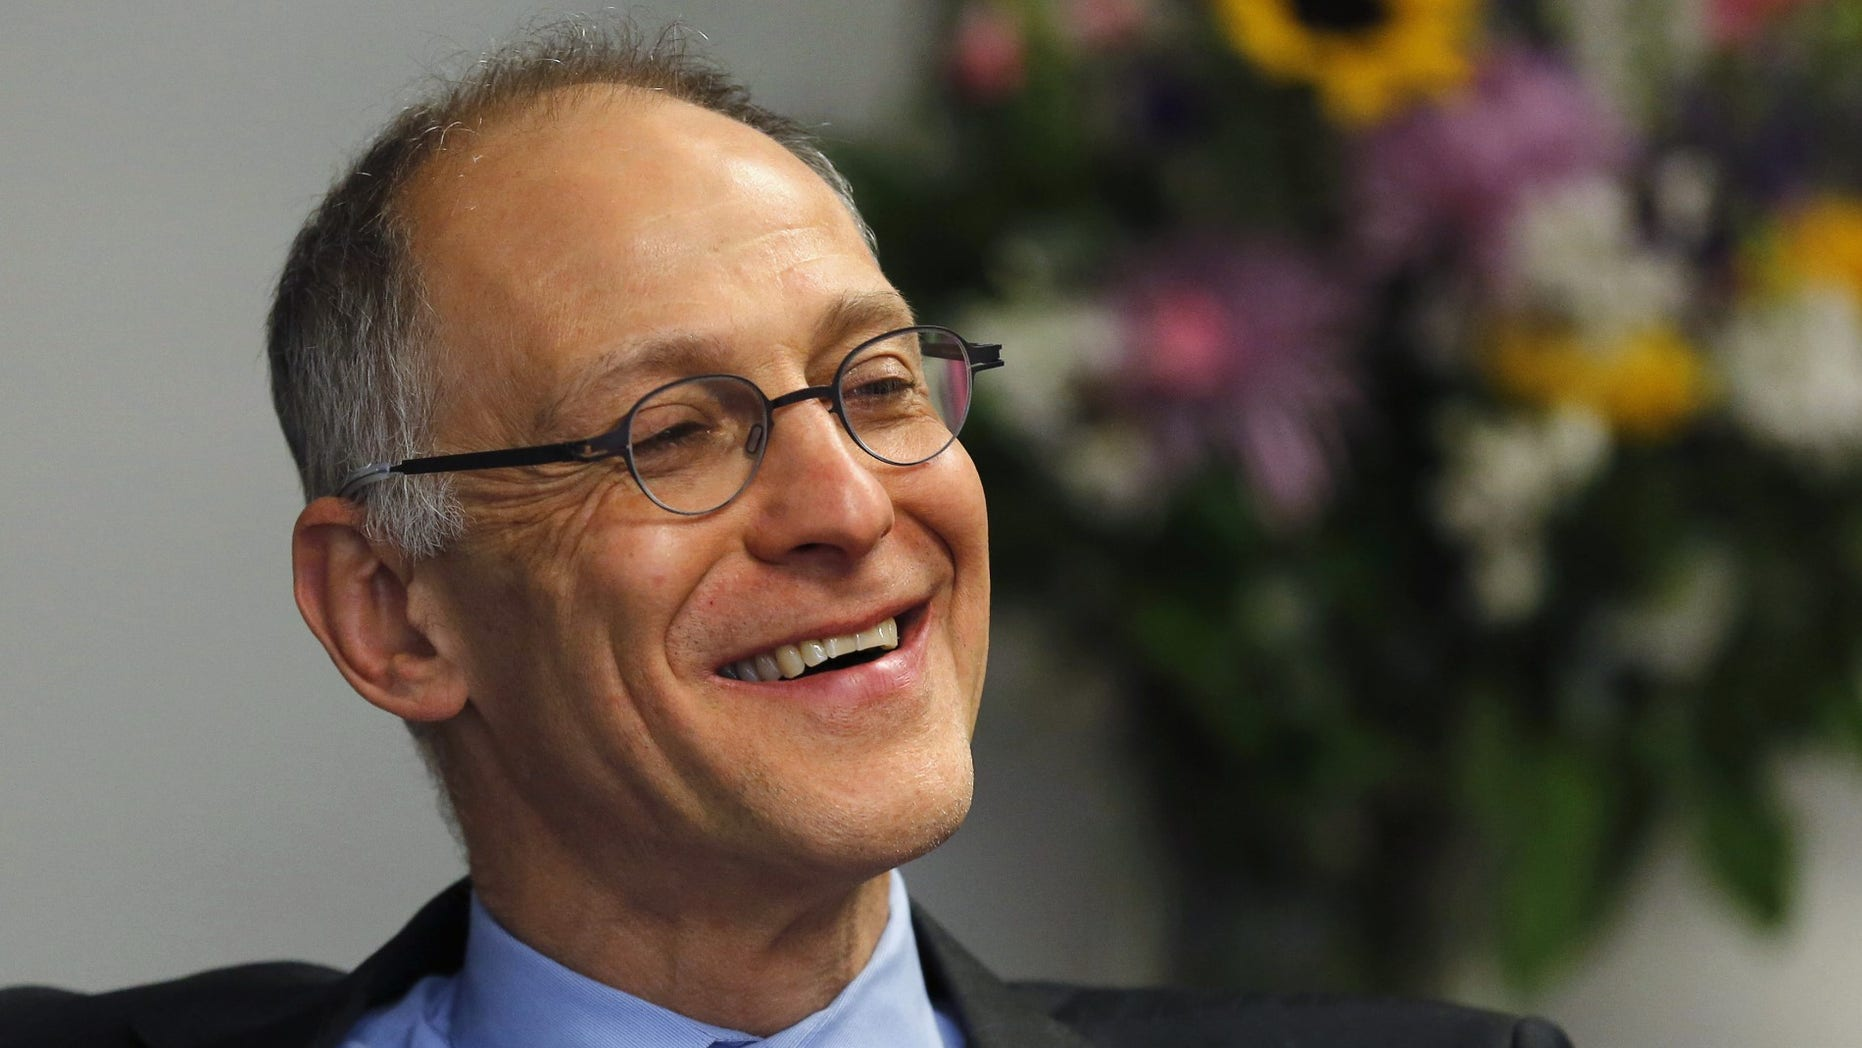 FILE -- Dr. Ezekiel Emanuel, professor of Health Care Management at the Wharton School of the University of Pennsylvania, is interviewed at the Reuters Health Summit 2014 in Washington April 1, 2014.